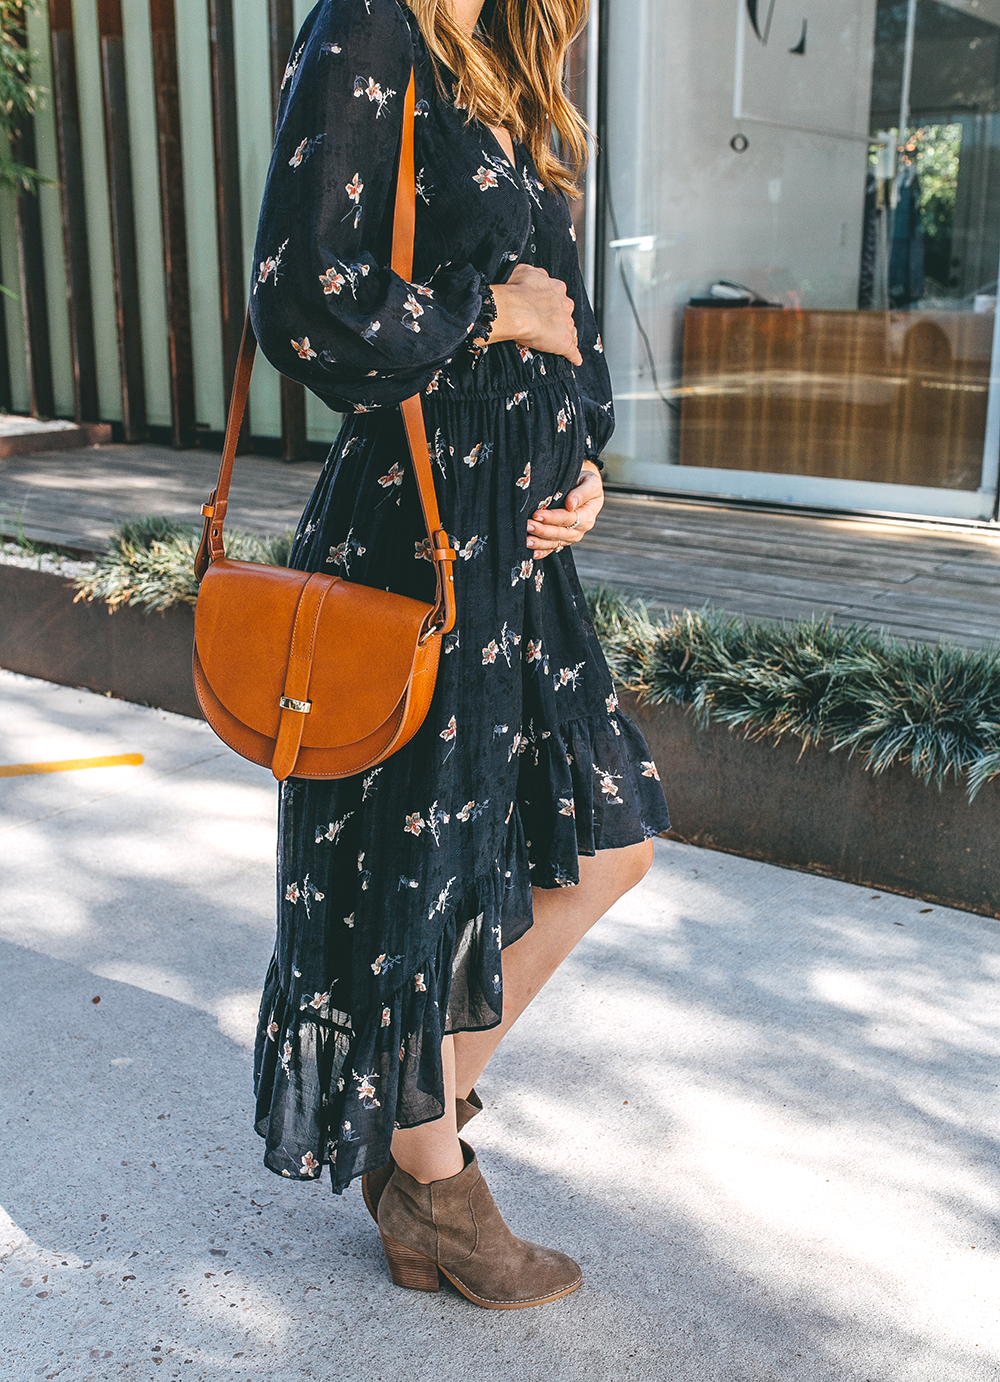 livvyland-blog-olivia-watson-austin-texas-fashion-blogger-domain-northside-joie-fall-dress-ankle-booties-outfit-4